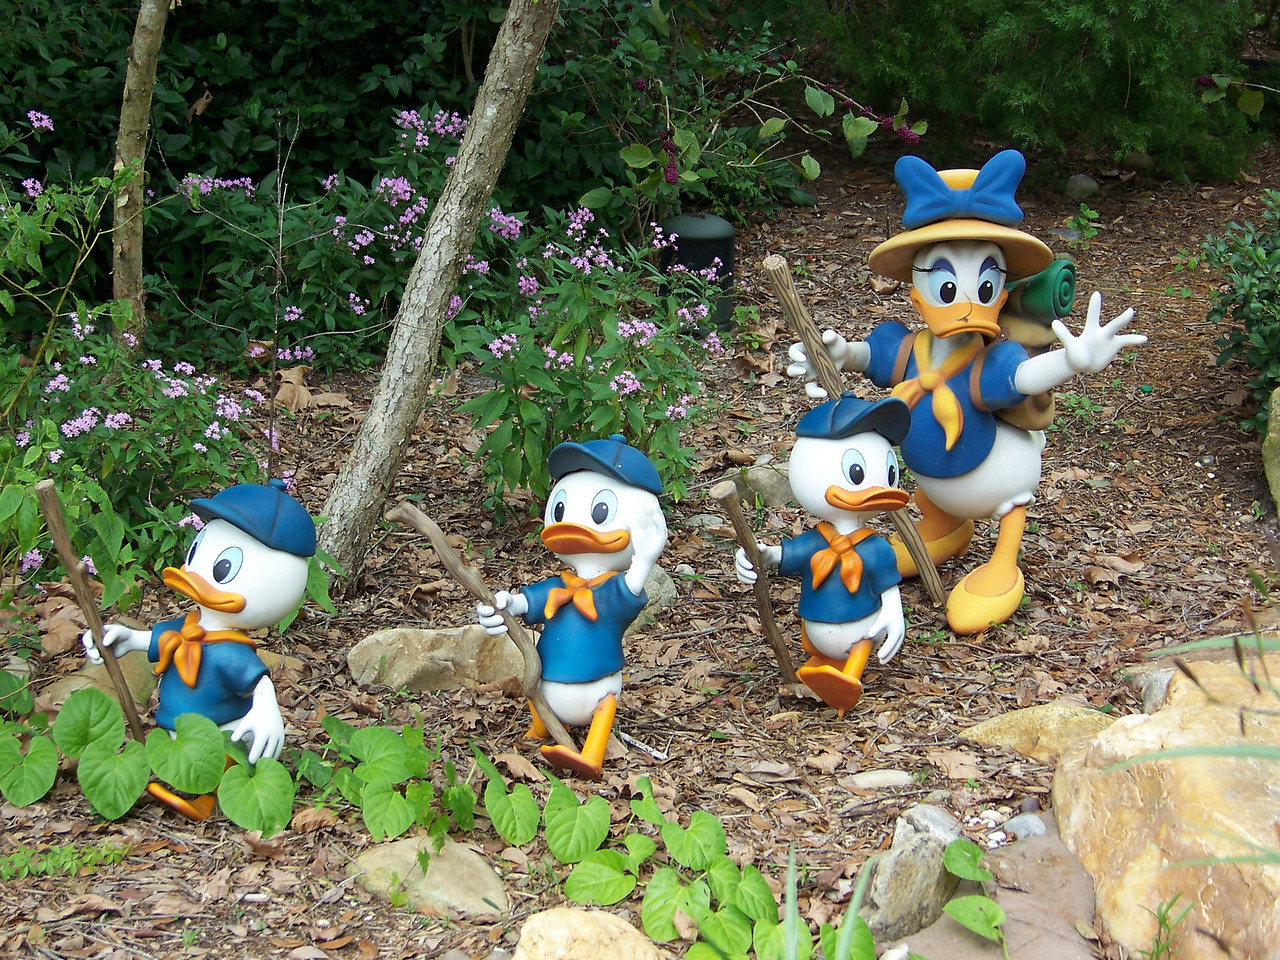 These cute figures of Daisy, Huey, Dewey, and Louie are in the Camp Minnie-Mickey section of the park.<br /> [Disney's Animal Kingdom]